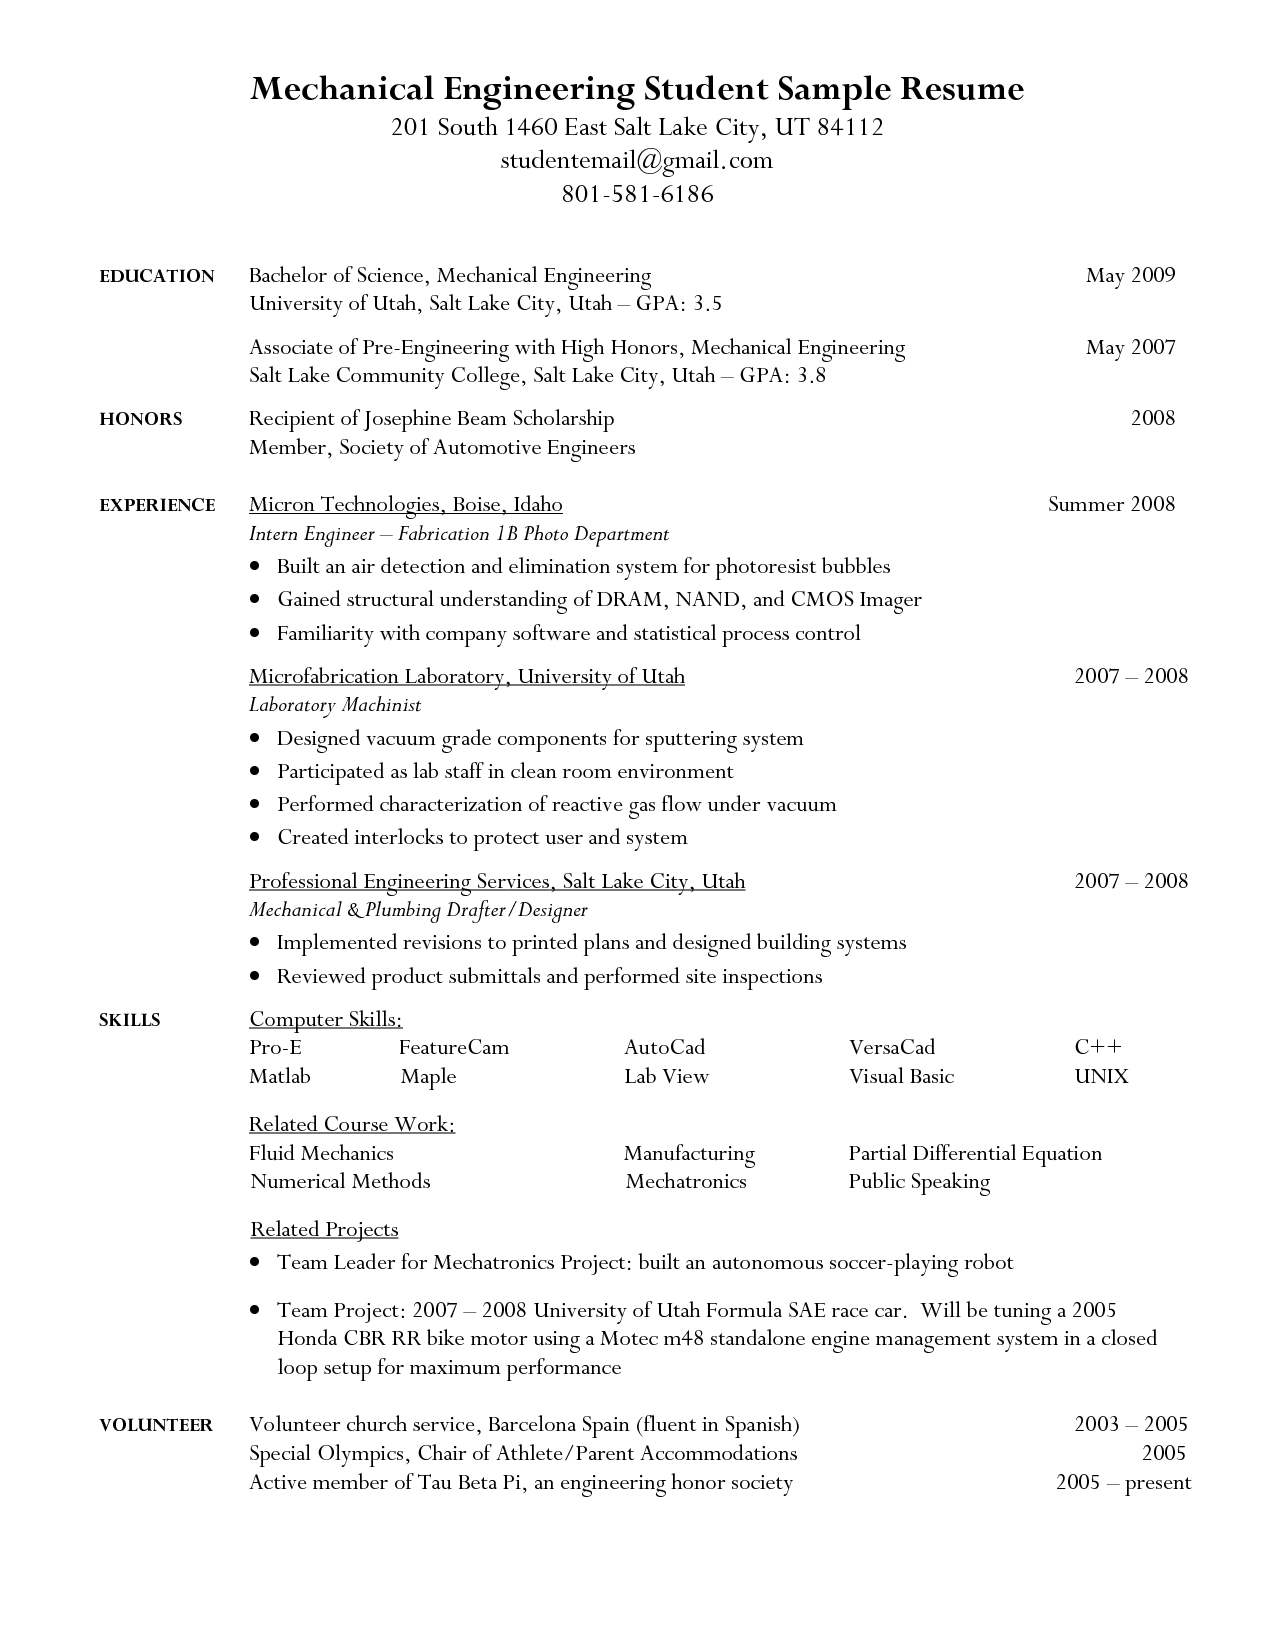 engineering student resume Google Search Resume